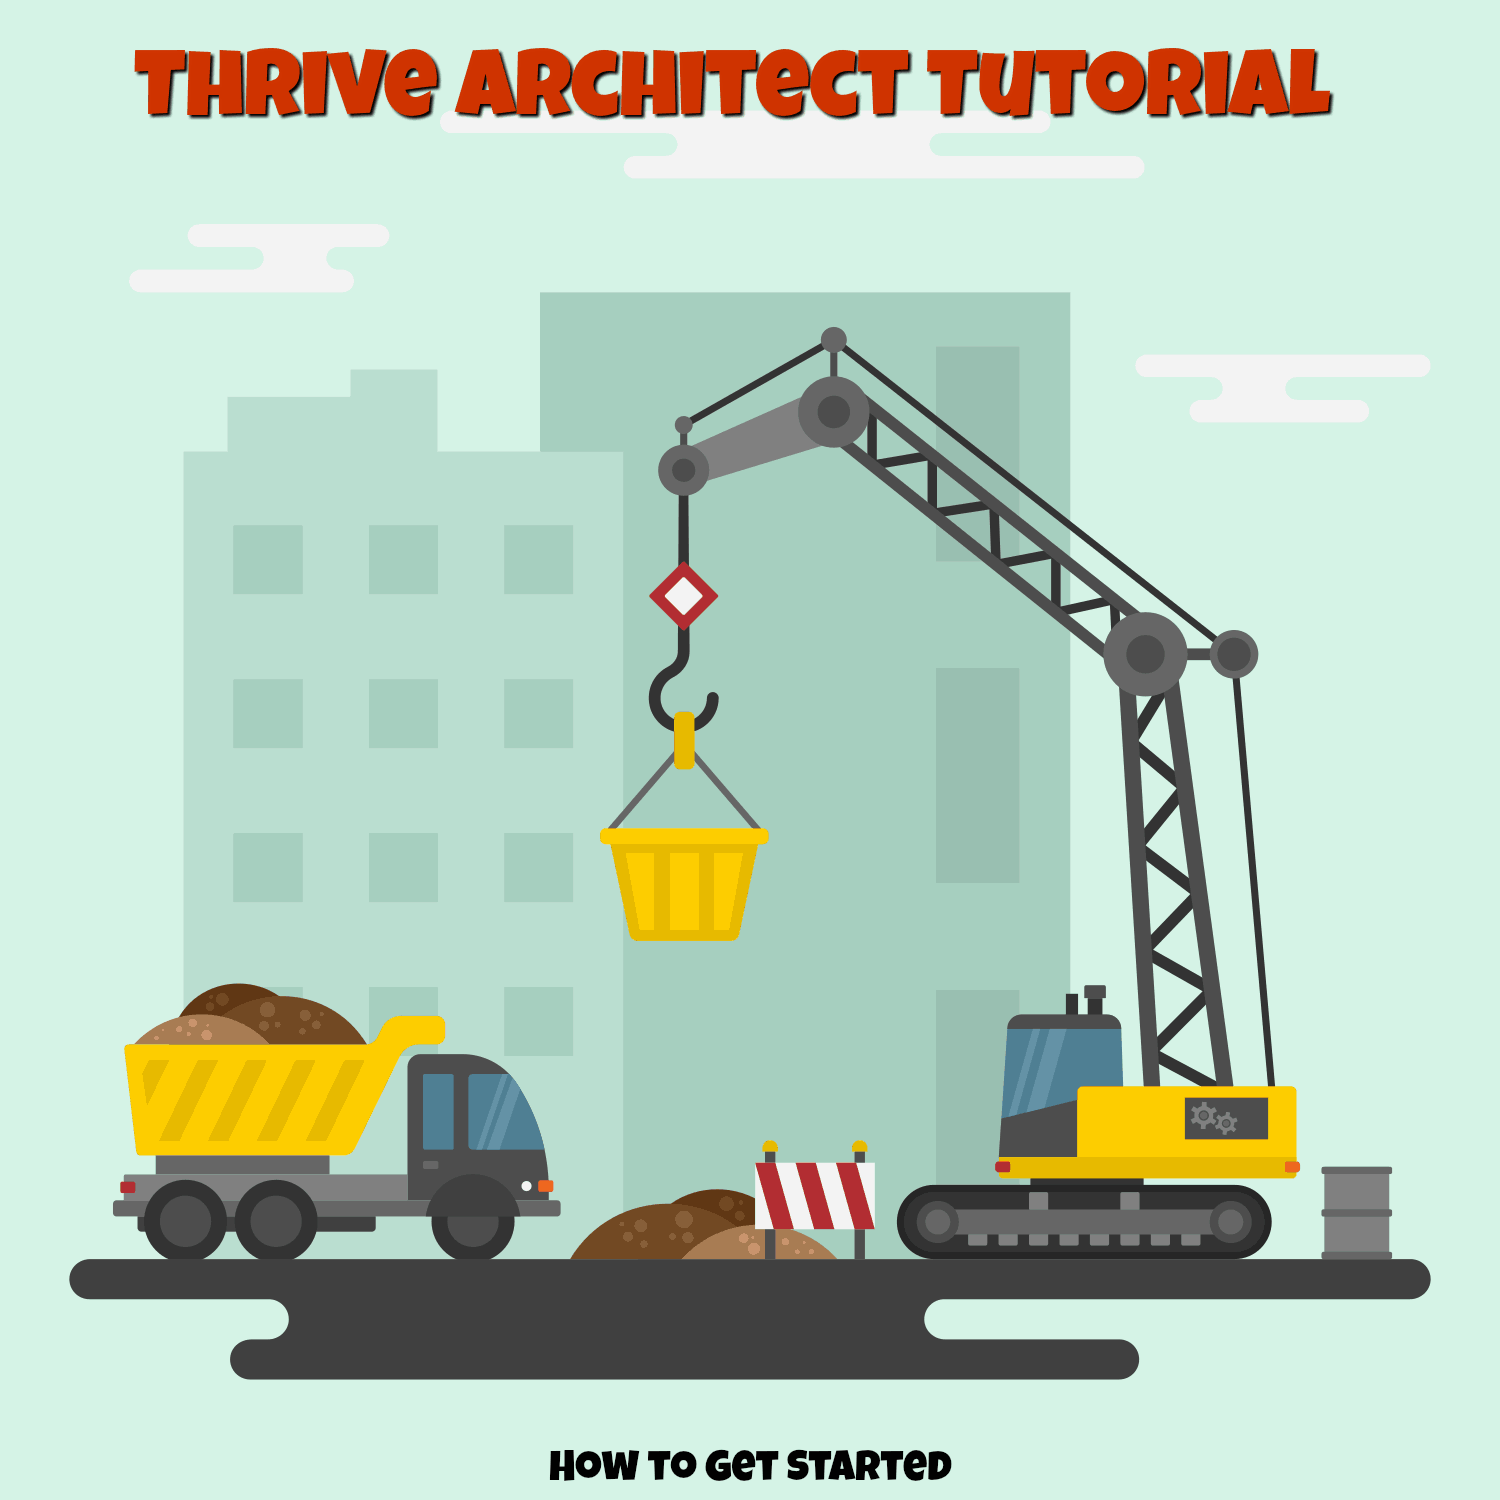 Thrive Architect Tutorial 1